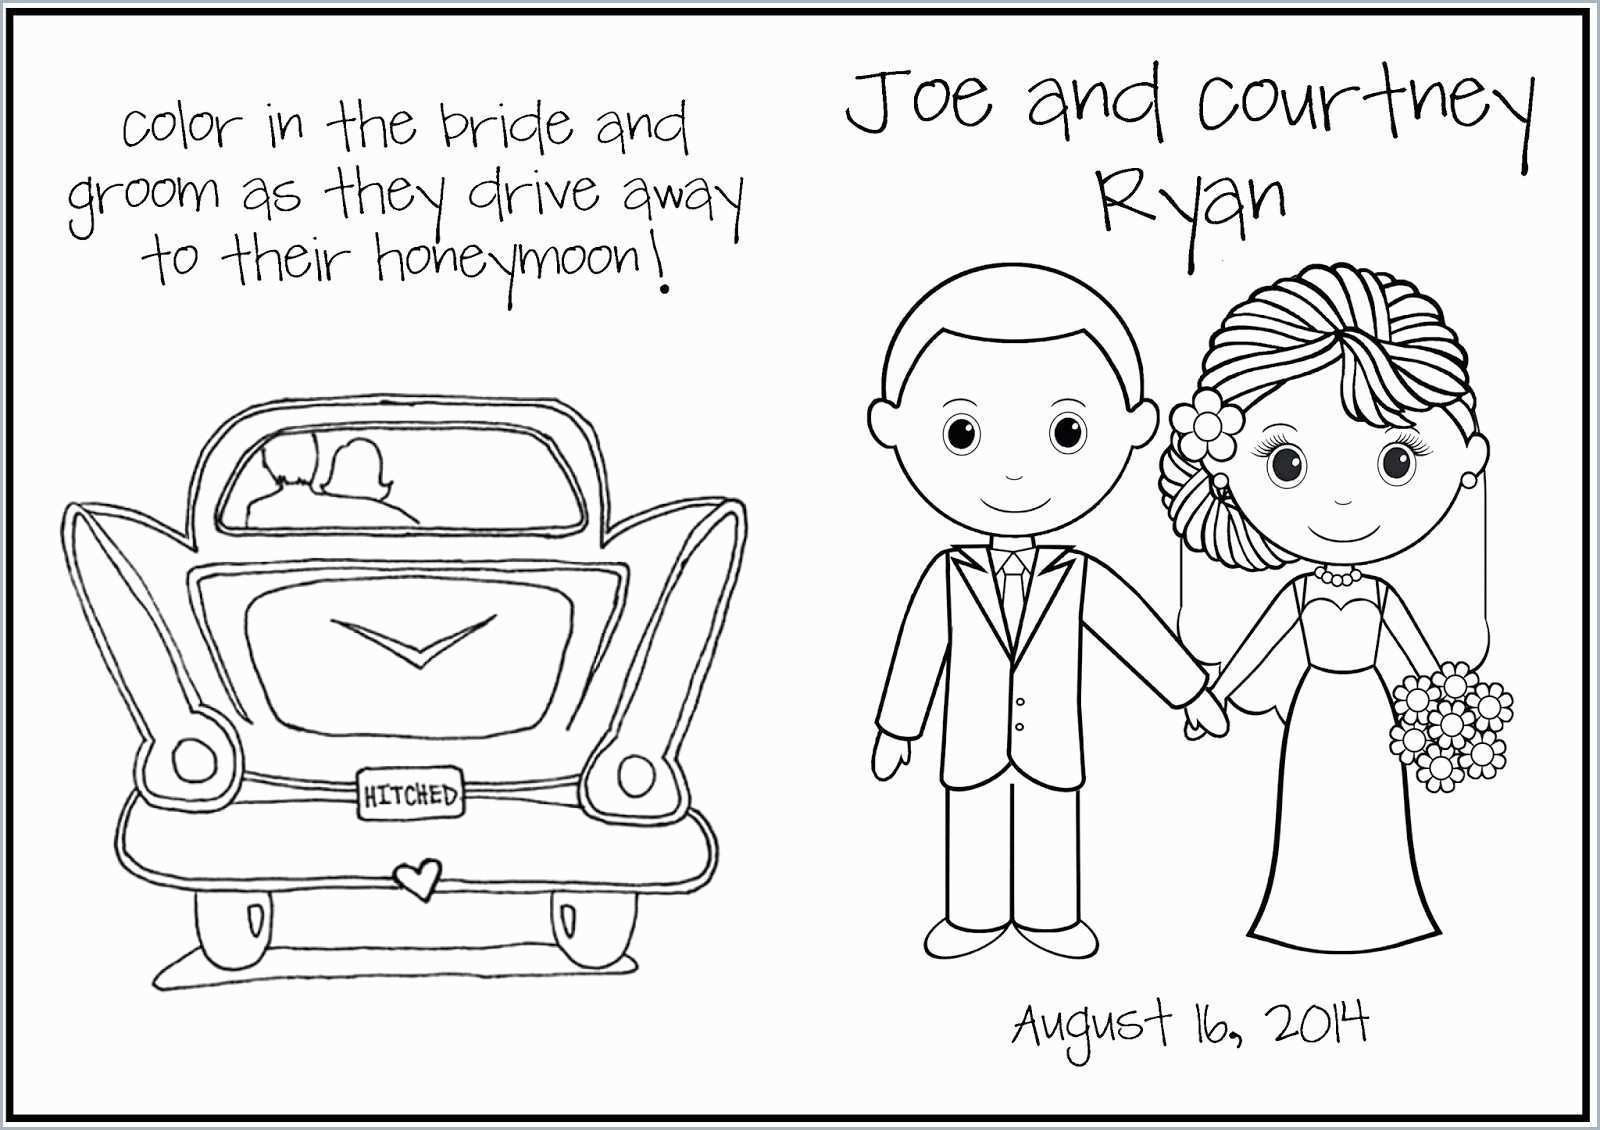 Coloring Pages : Marvelous Free Wedding Coloring Book Image - Wedding Coloring Book Free Printable